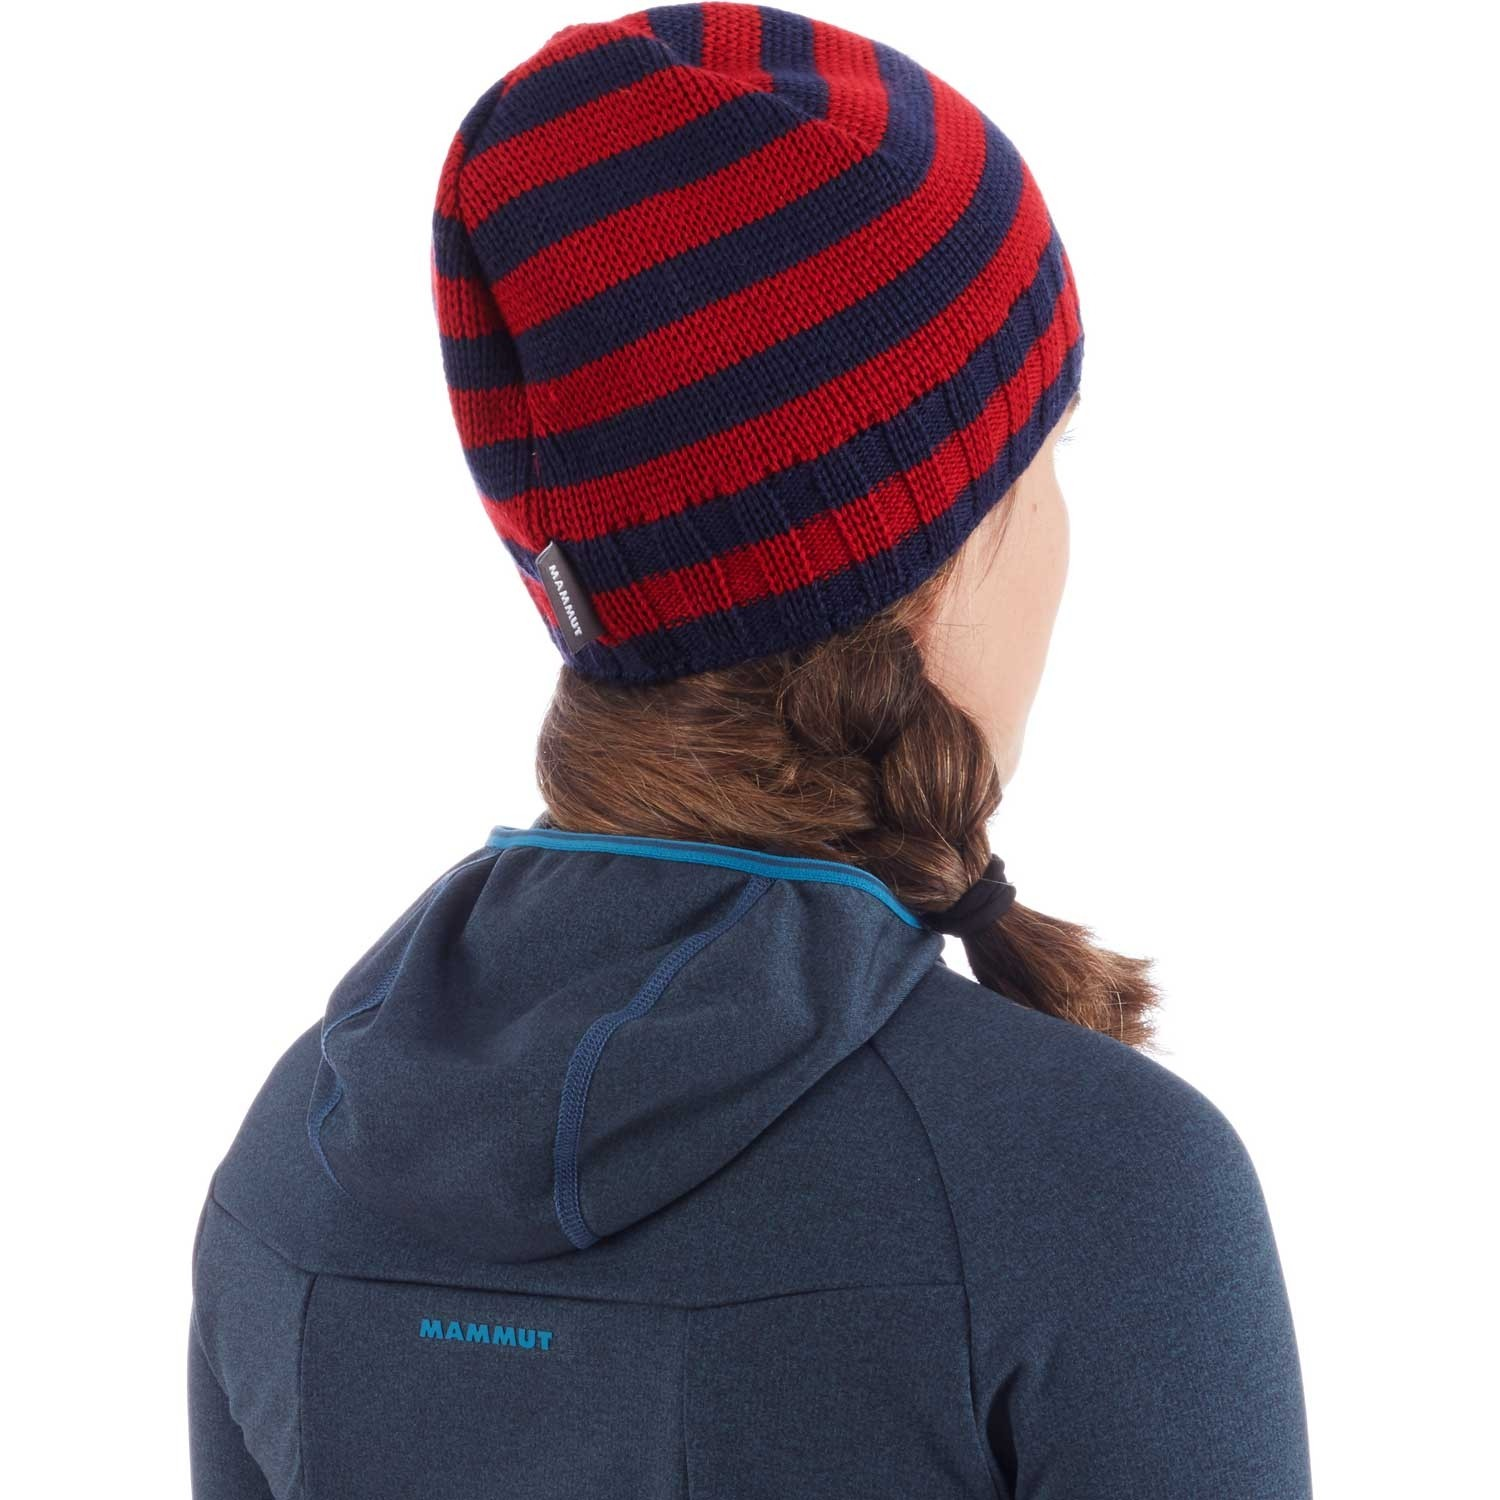 Mammut Passion Beanie - Peacoat/Scooter